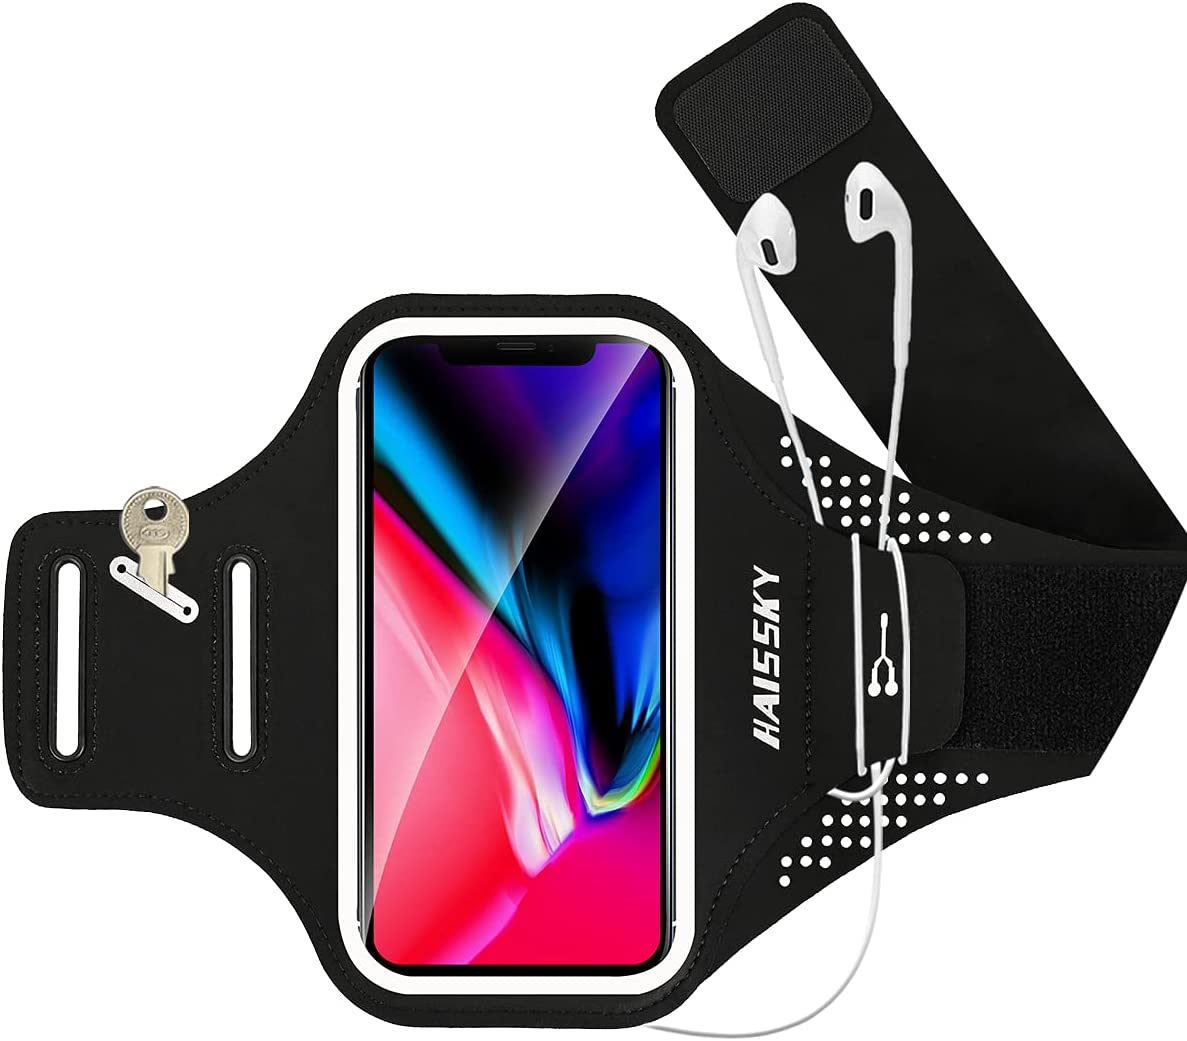 GUZACK Cell Phone Running Armband 12 iPhone Holder OFFicial mail Time sale order Pro for